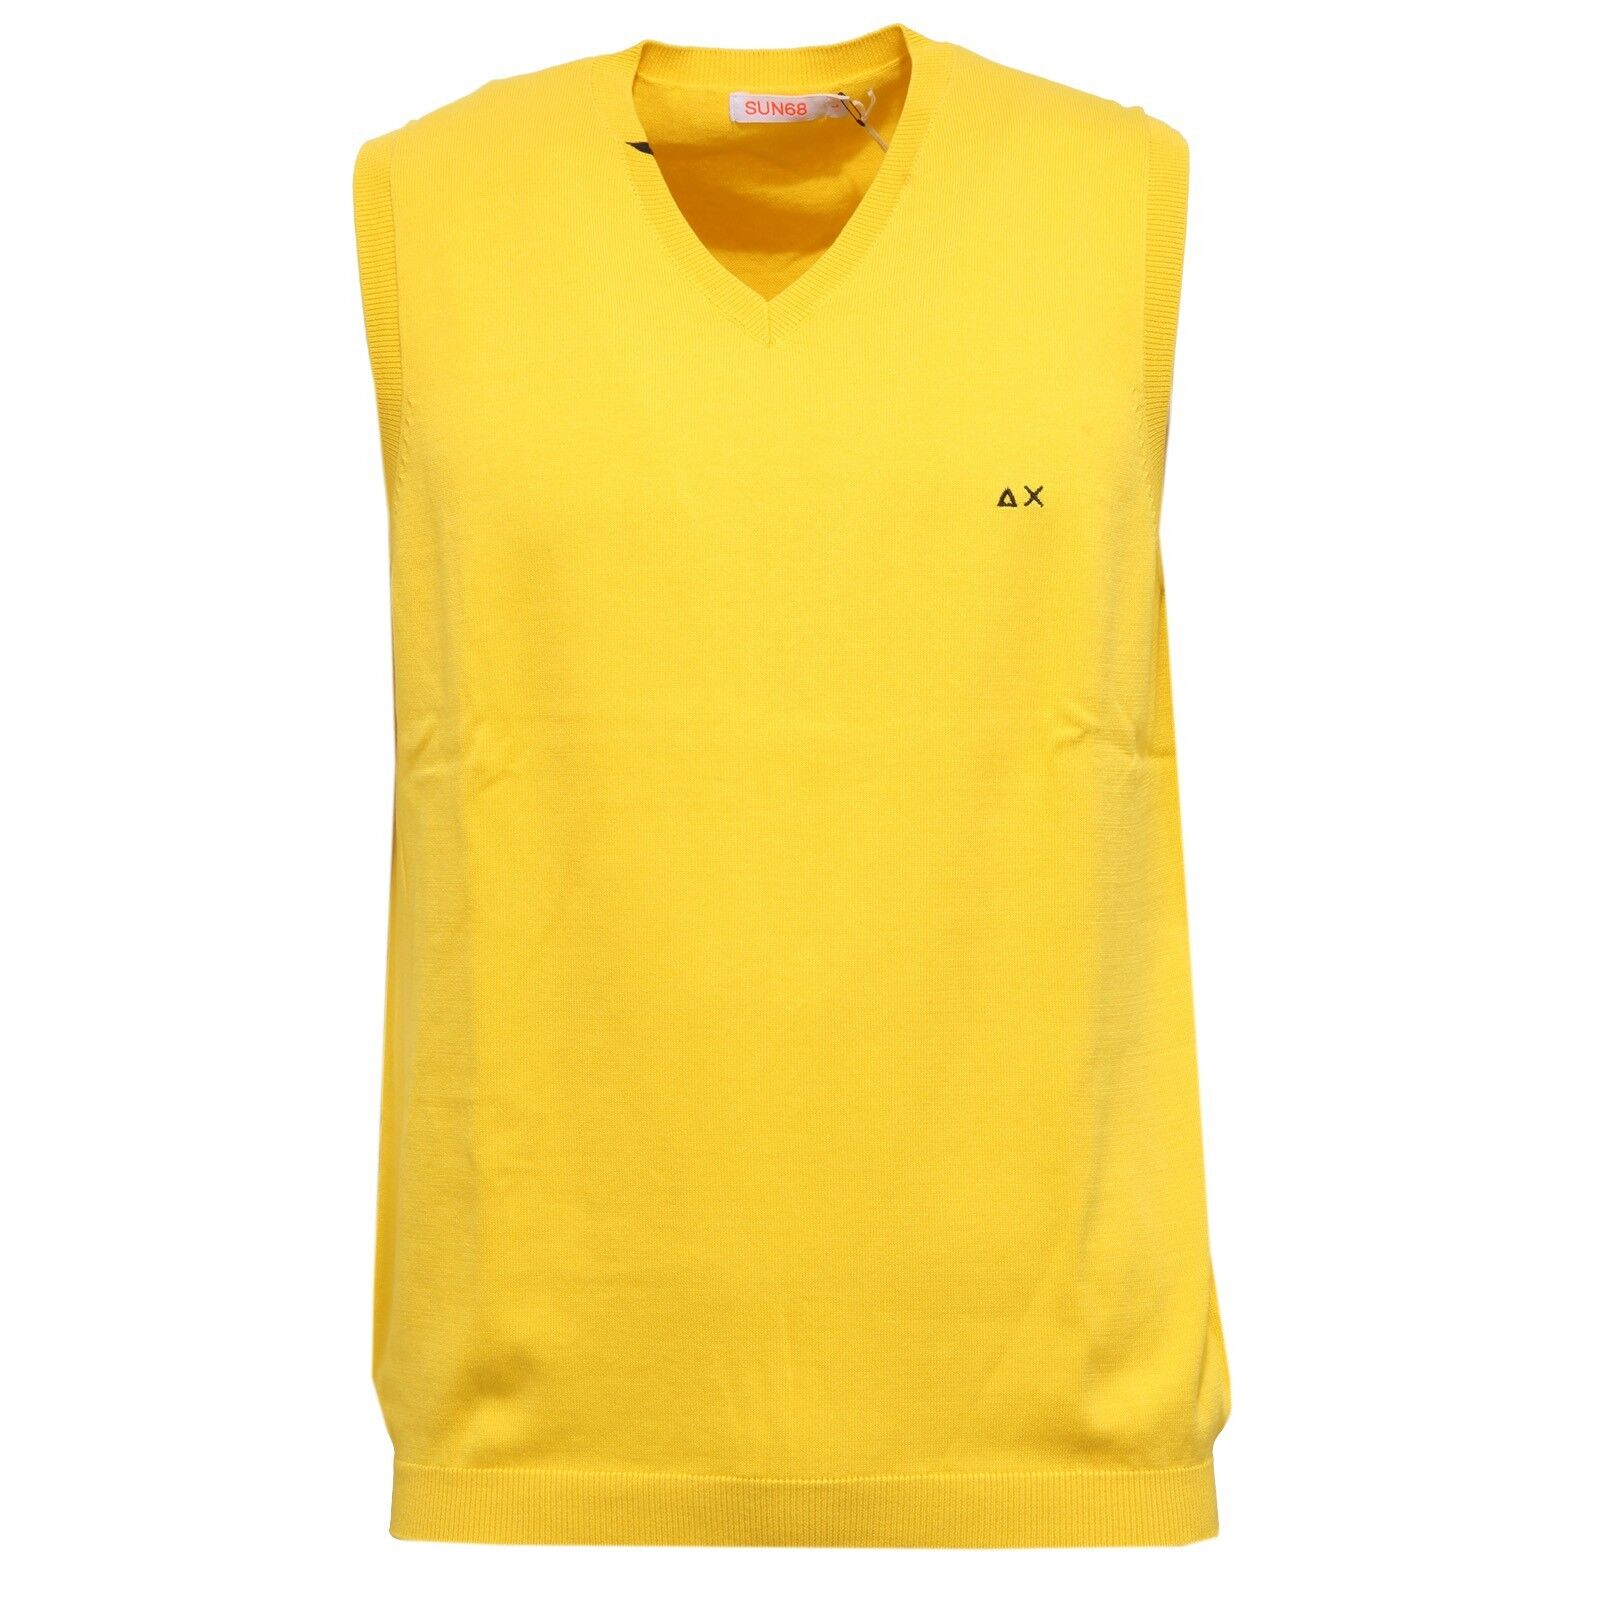 Cotton Sun Gilet Sweater 68 Uomo Jaune 0707w Sleeveless q1Ufx6F